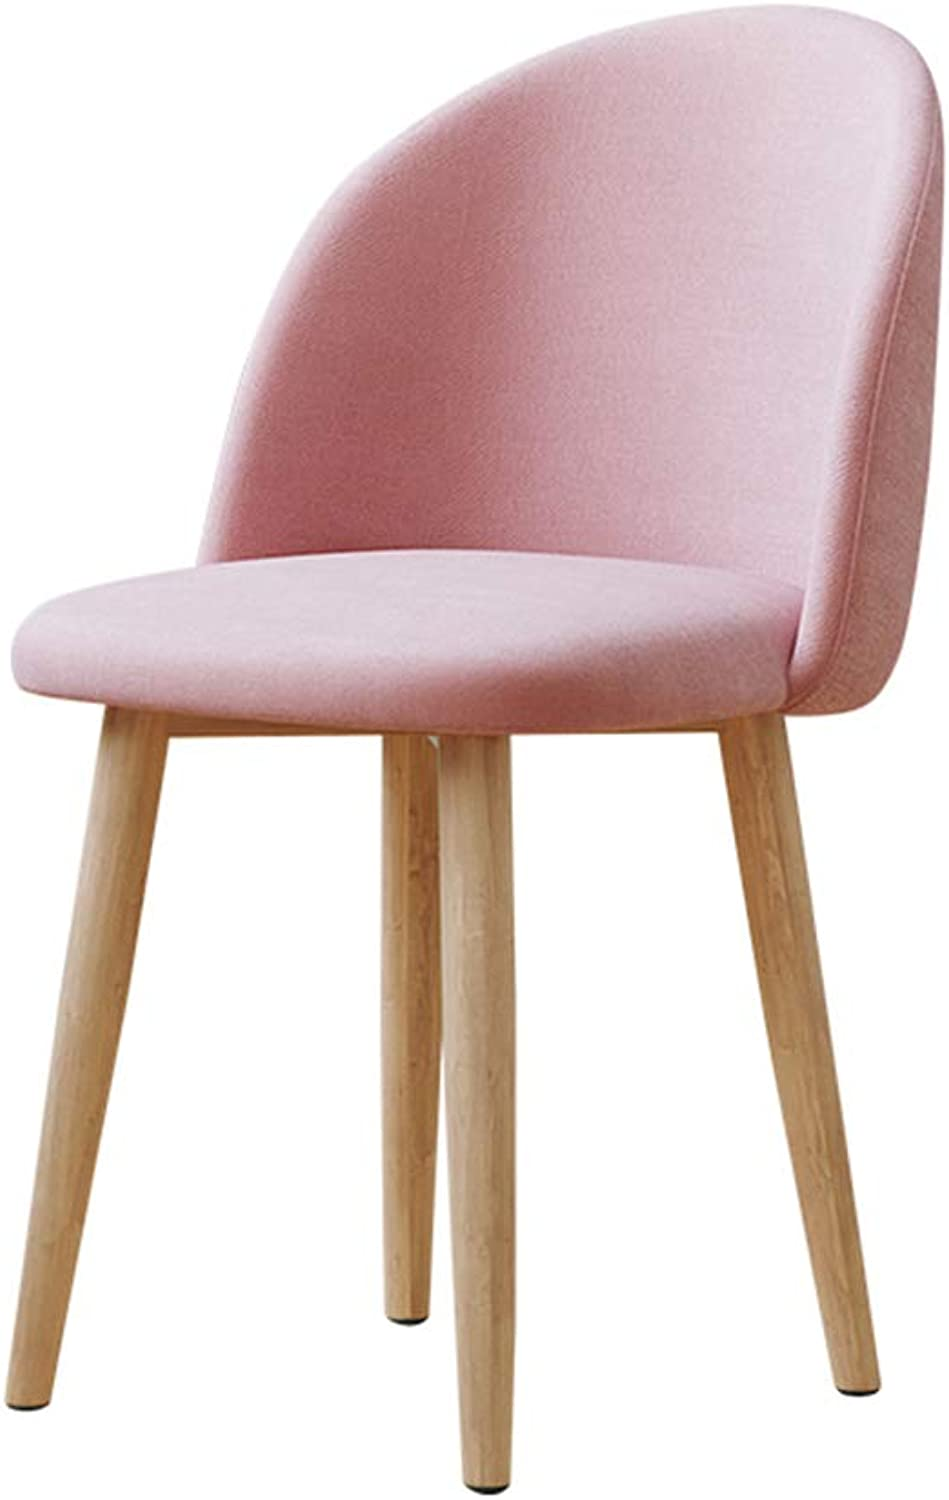 DUXX Chairs, Desk Chairs Stool Chair Leisure Chair Girl Makeup Bedroom (color   F)